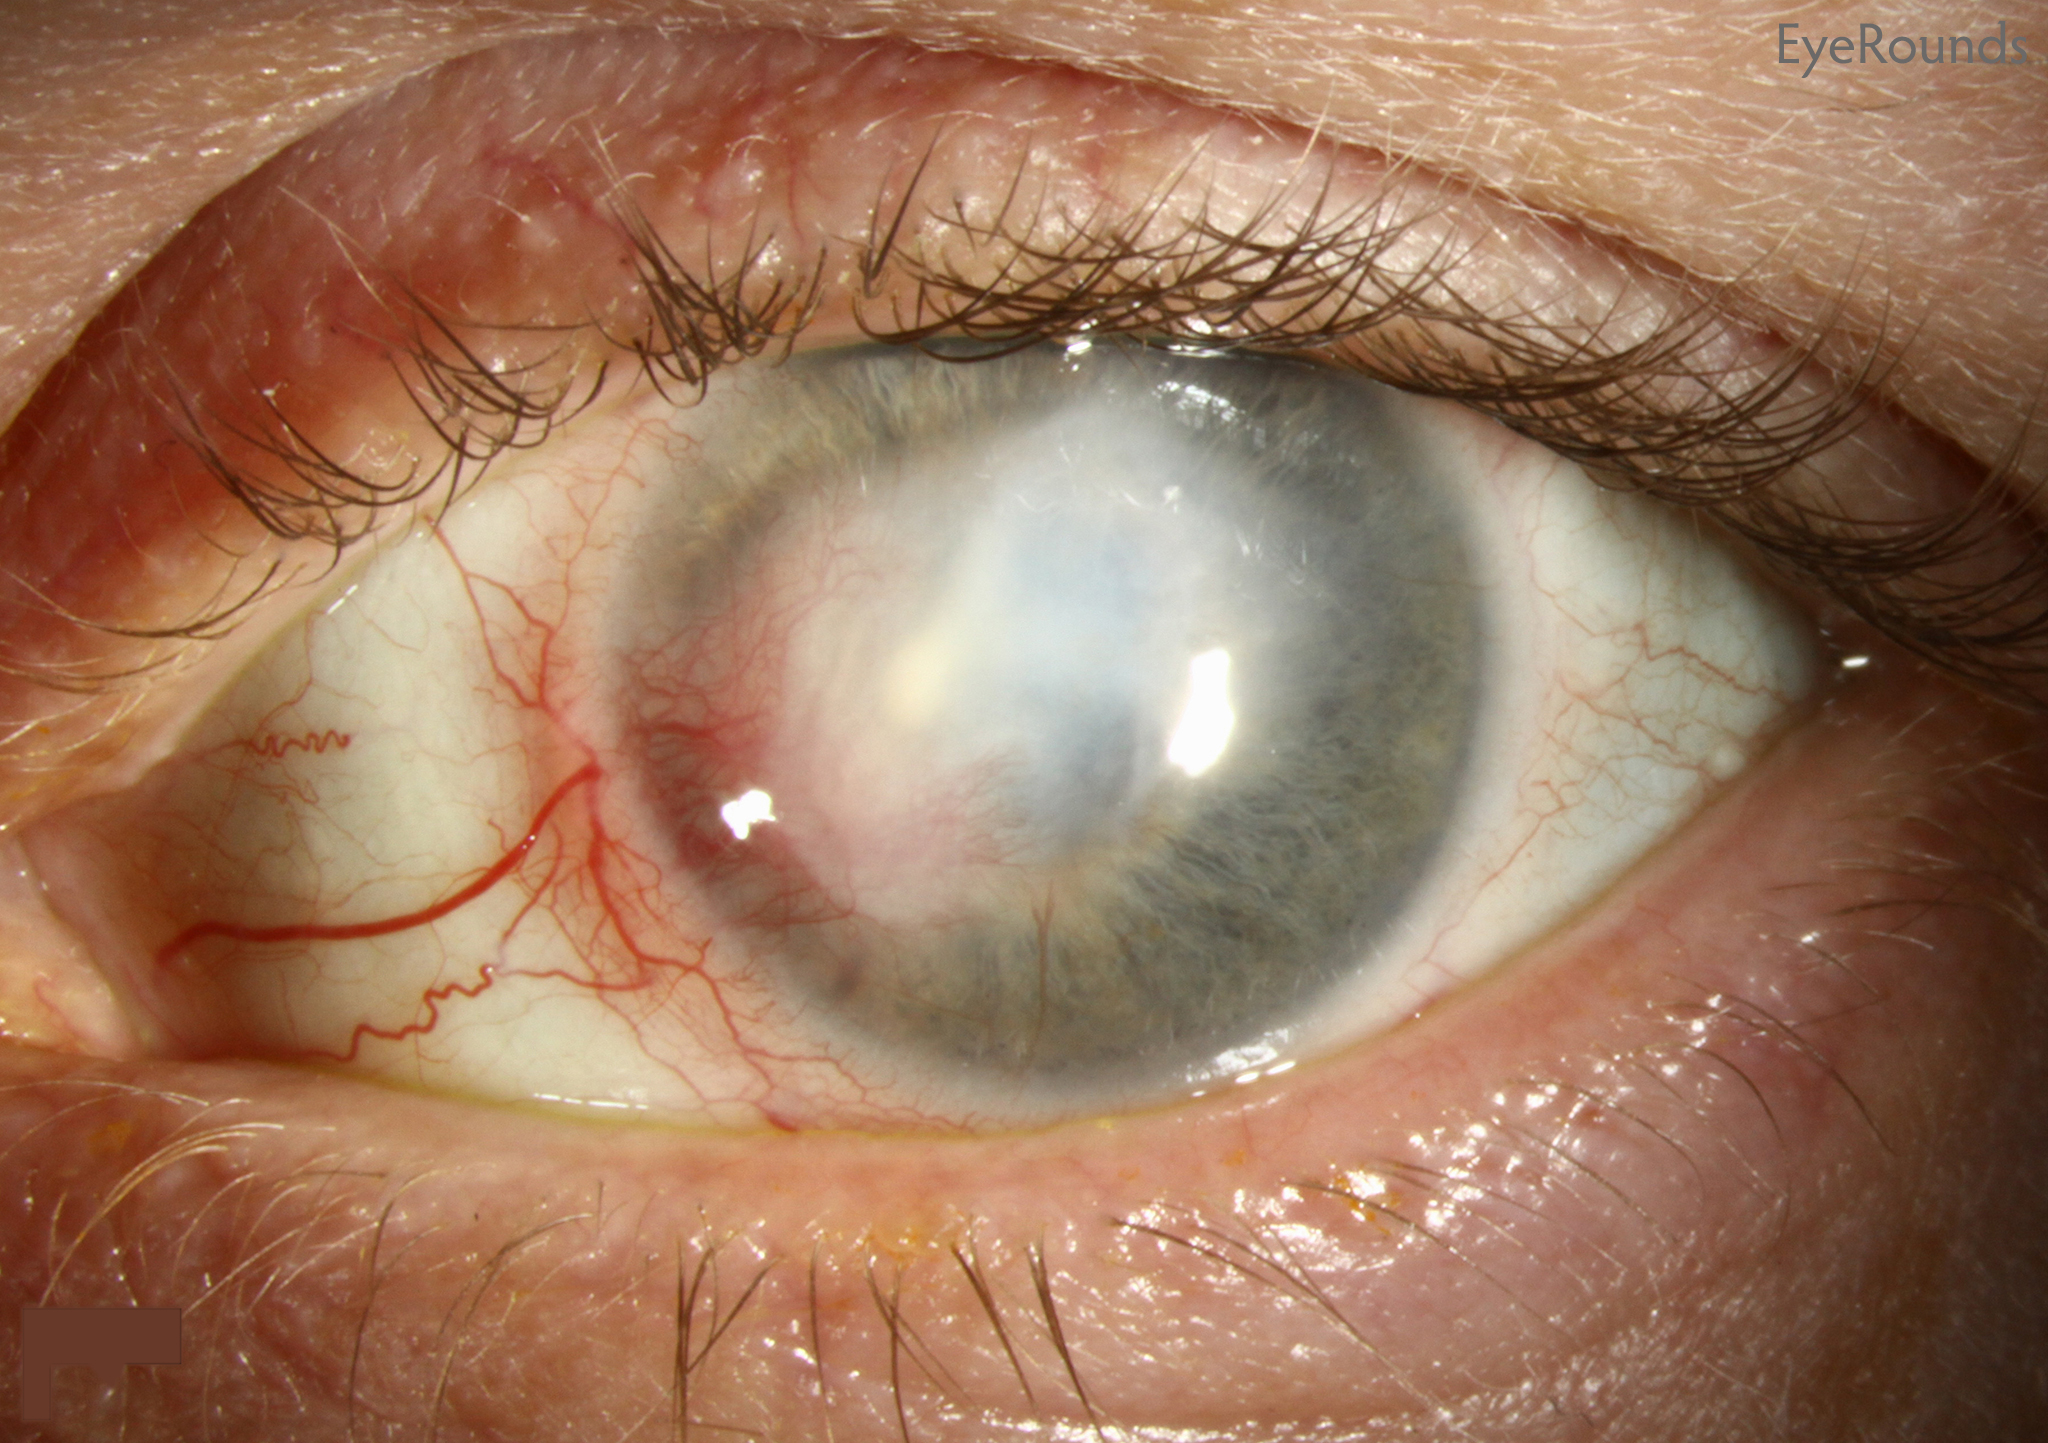 Keratitis of the eye: causes, symptoms and treatment of the disease 80